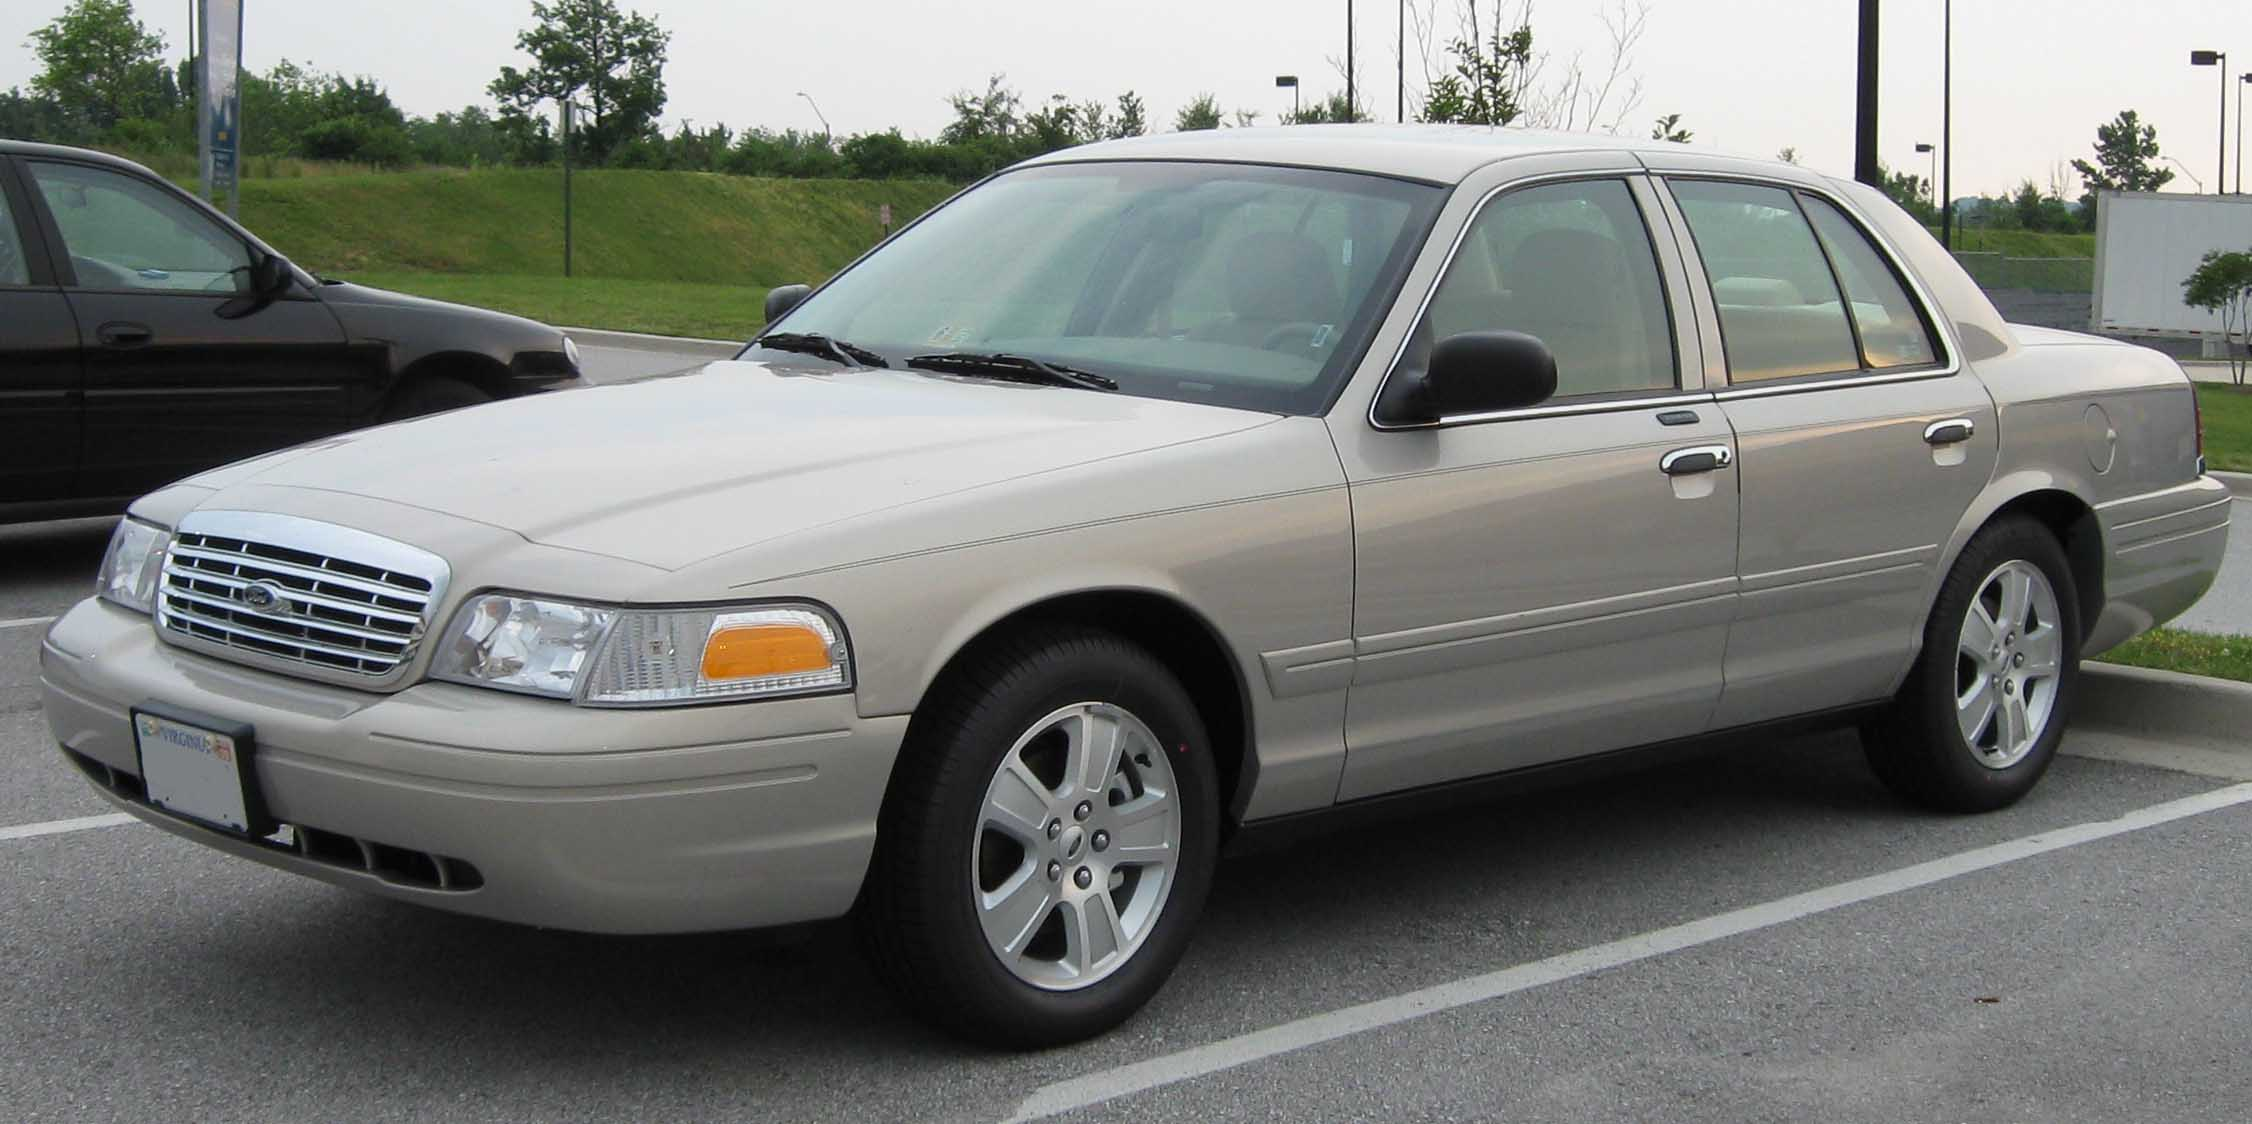 Ford Crown Victoria Recall over headlight issues